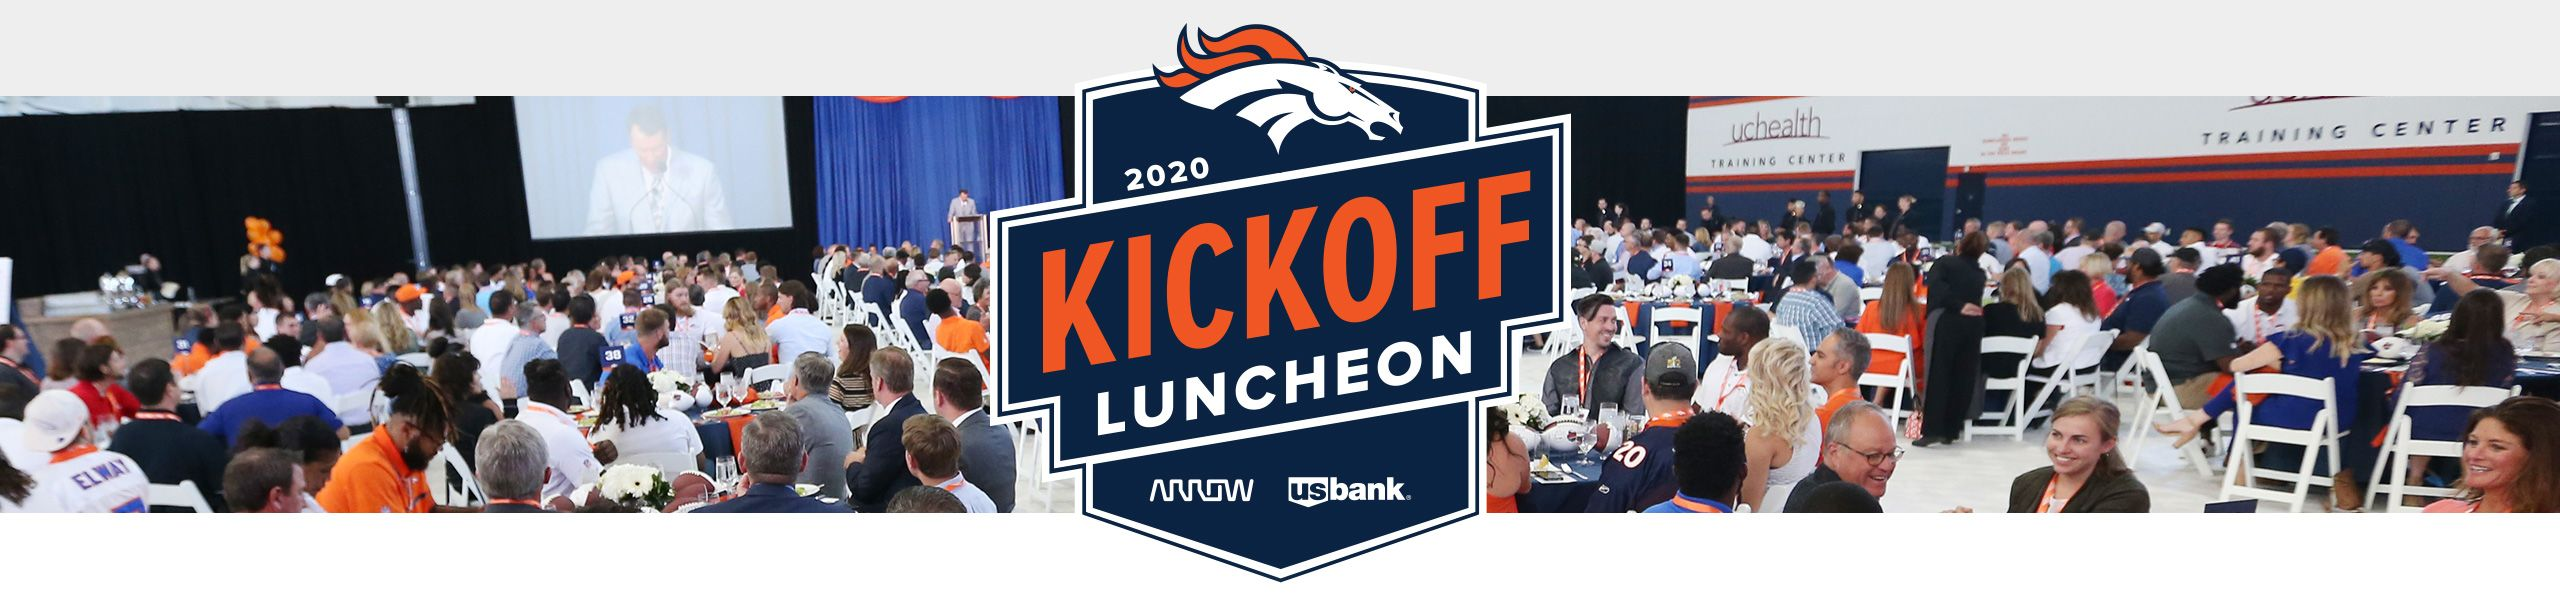 virtual_kickoff_luncheon_hero_2560x600